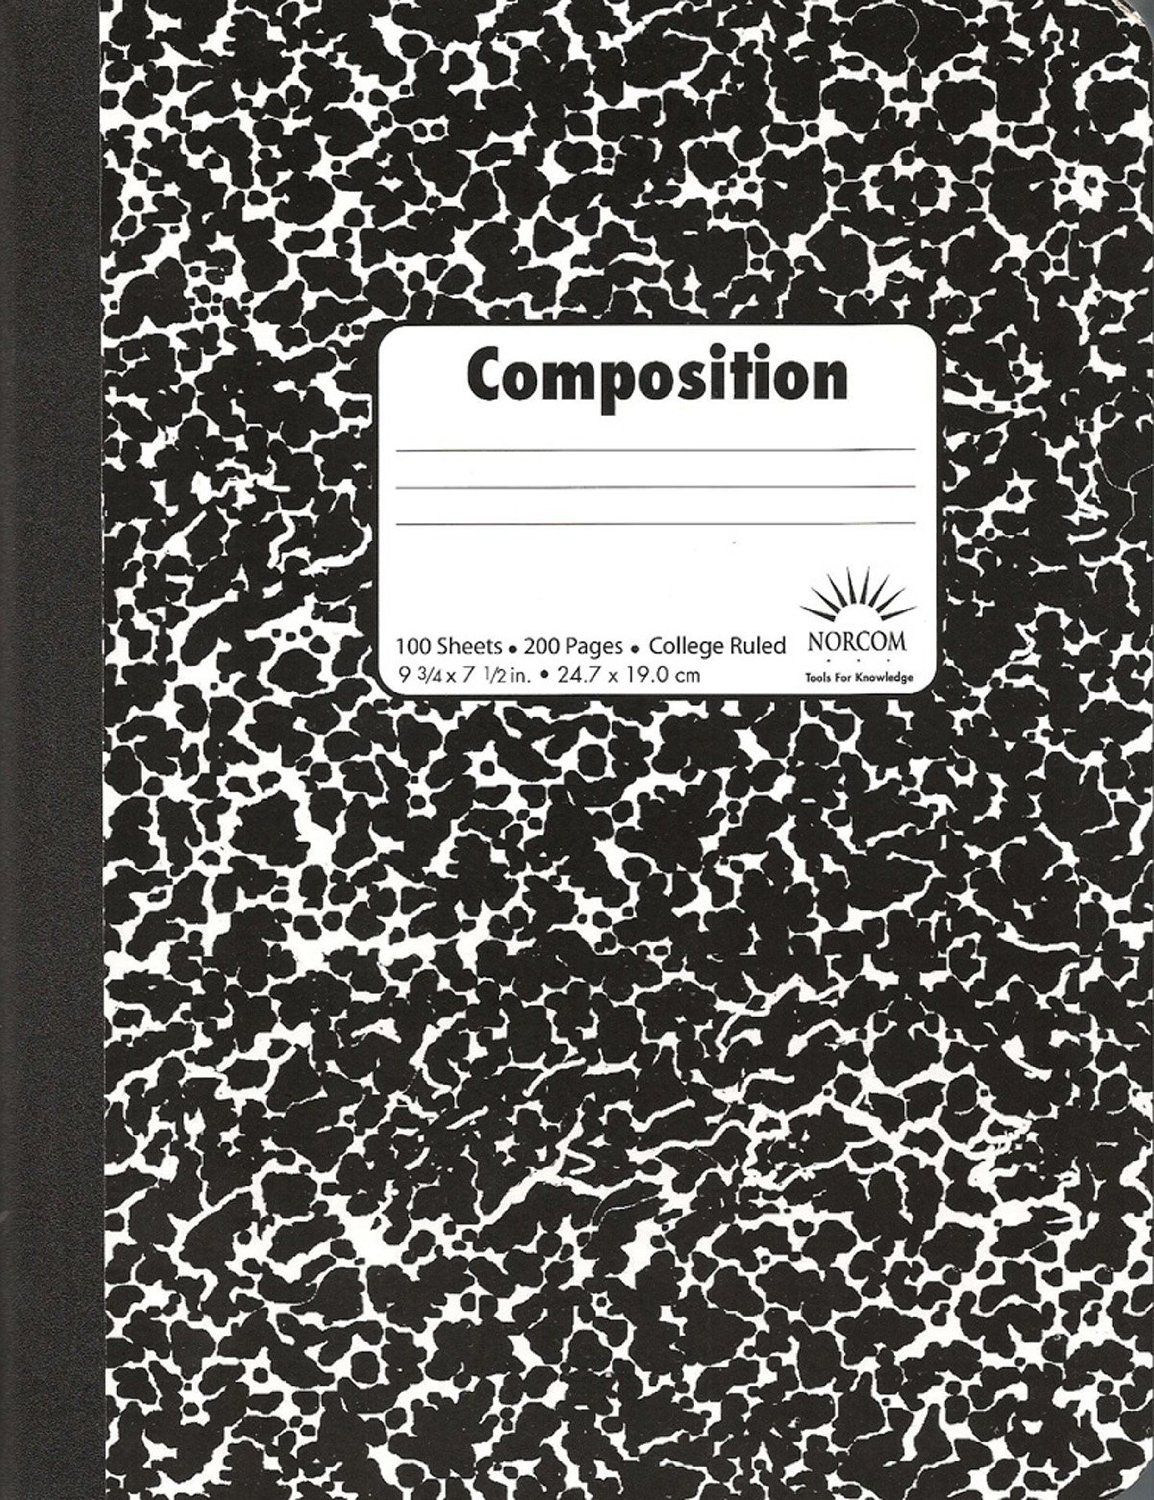 Composition Book Cover Template : Pin by rachel neumann on icons pinterest interactive